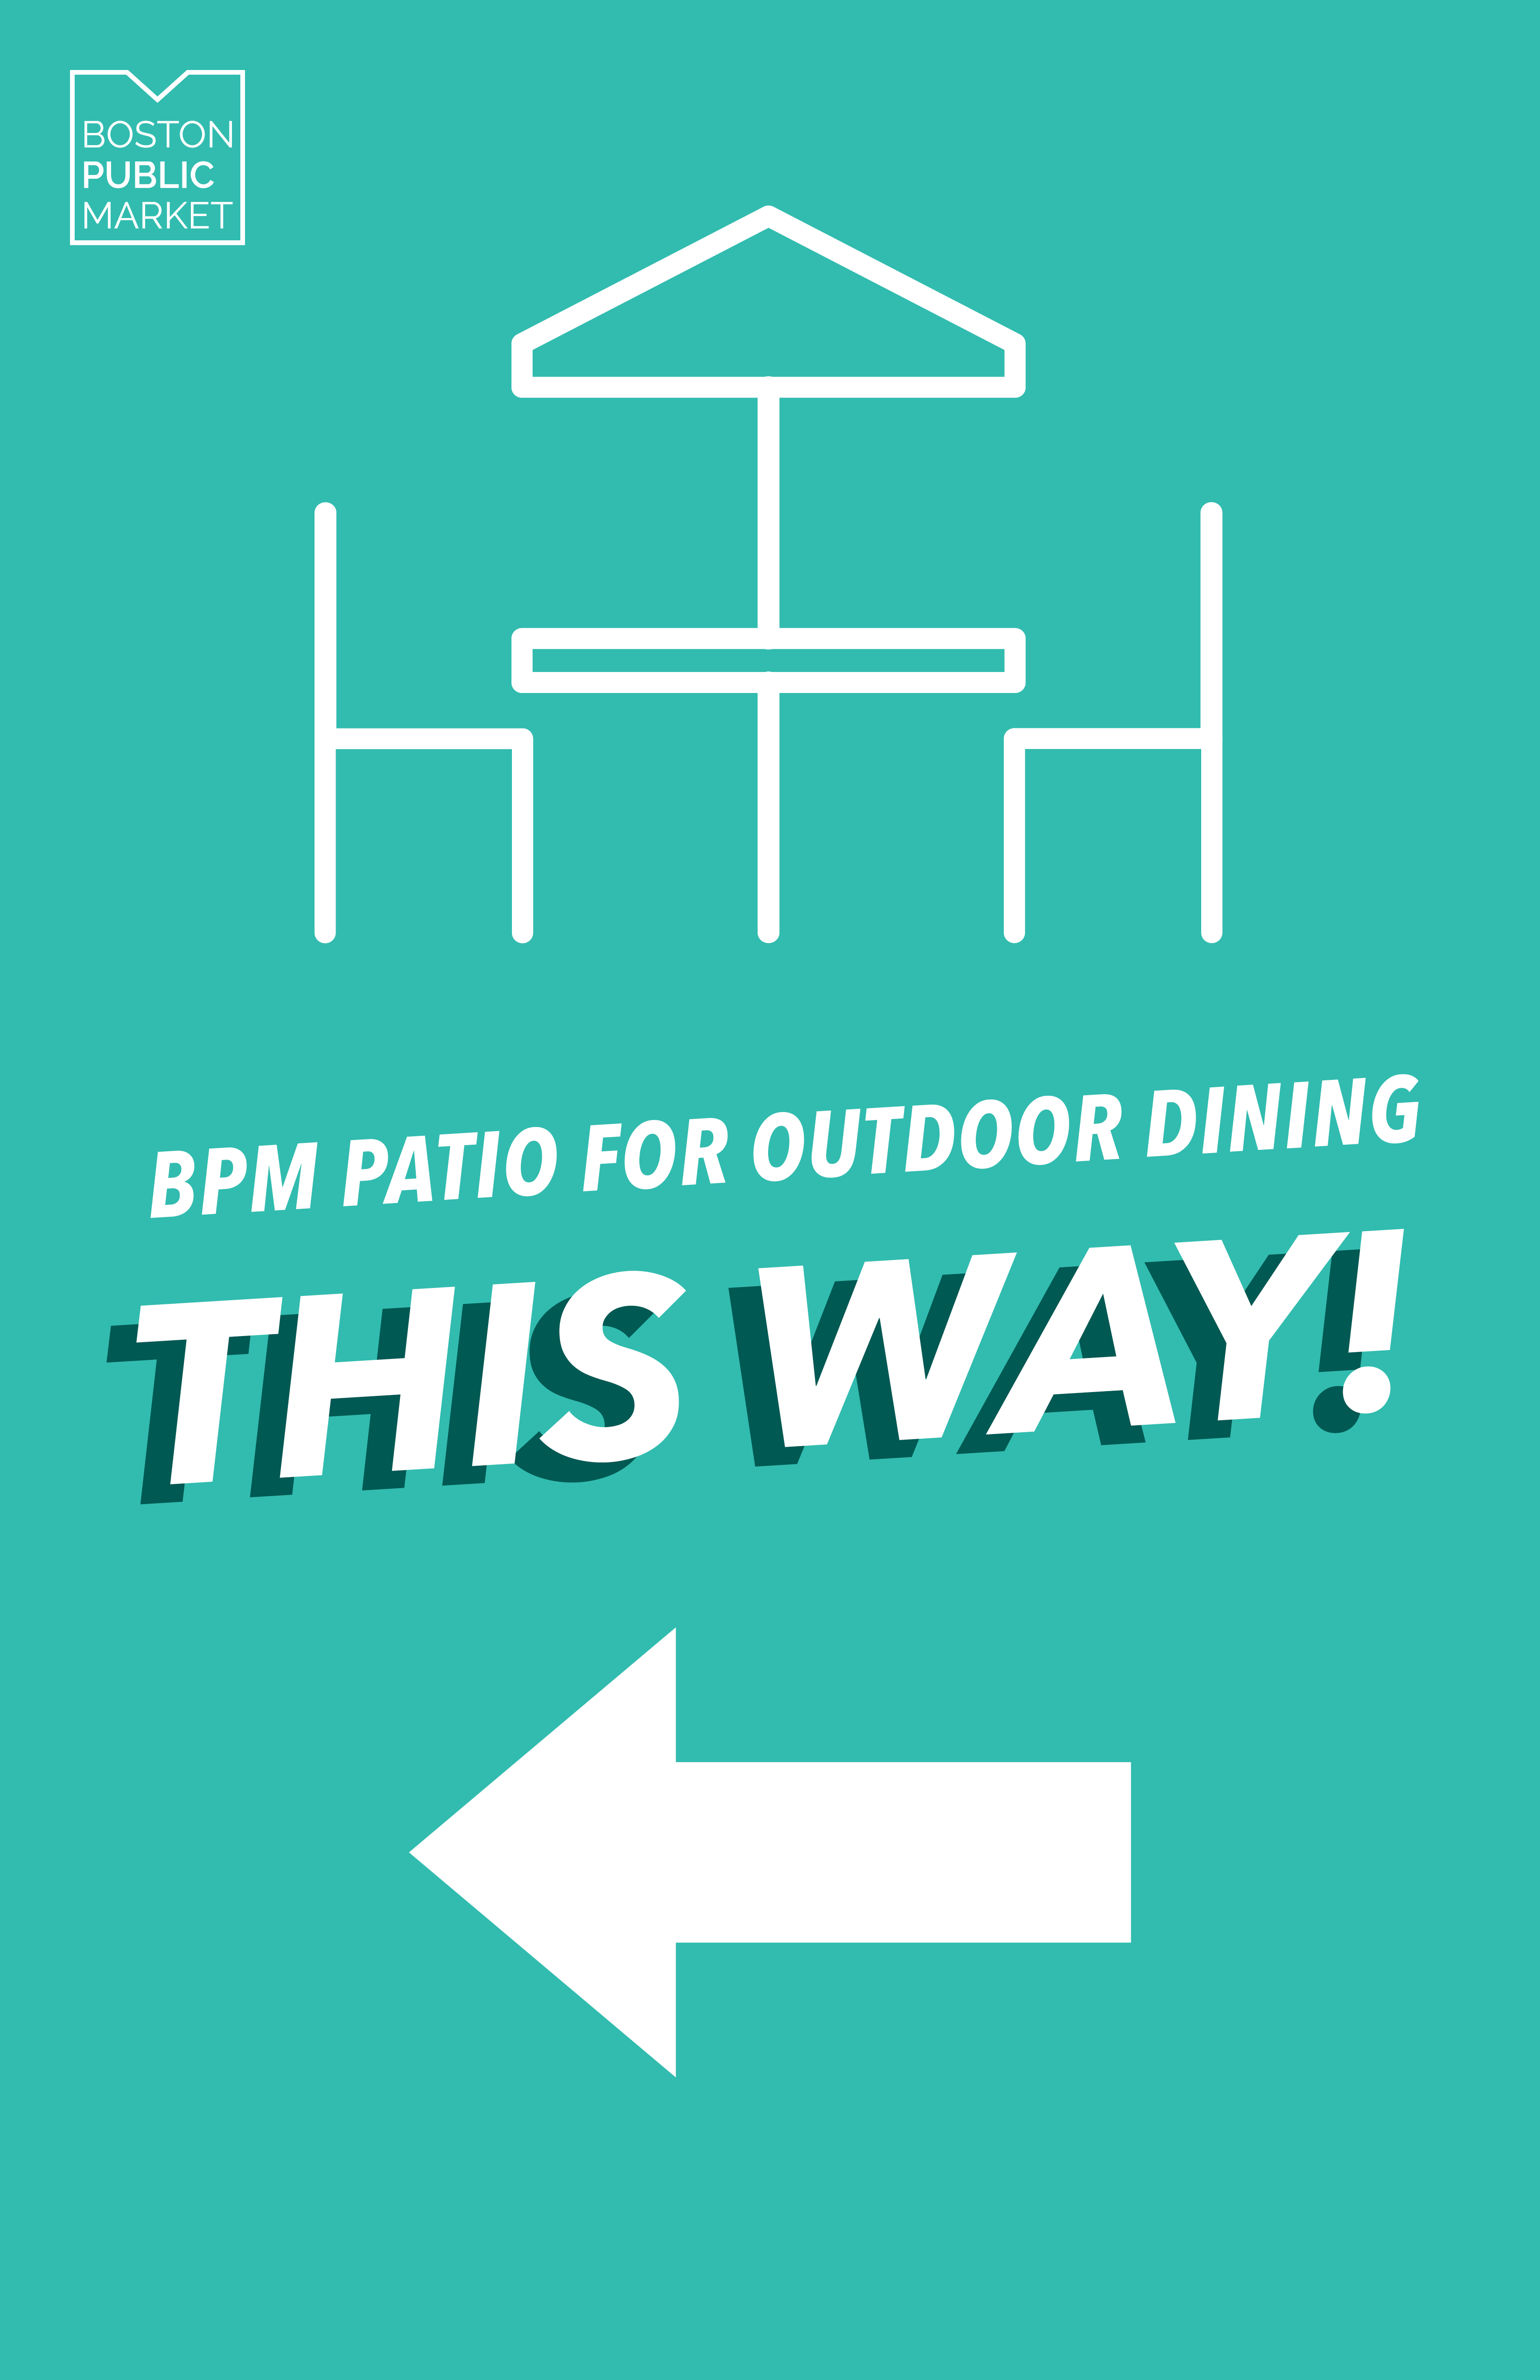 BPM_Outdoor_Dining_Directions